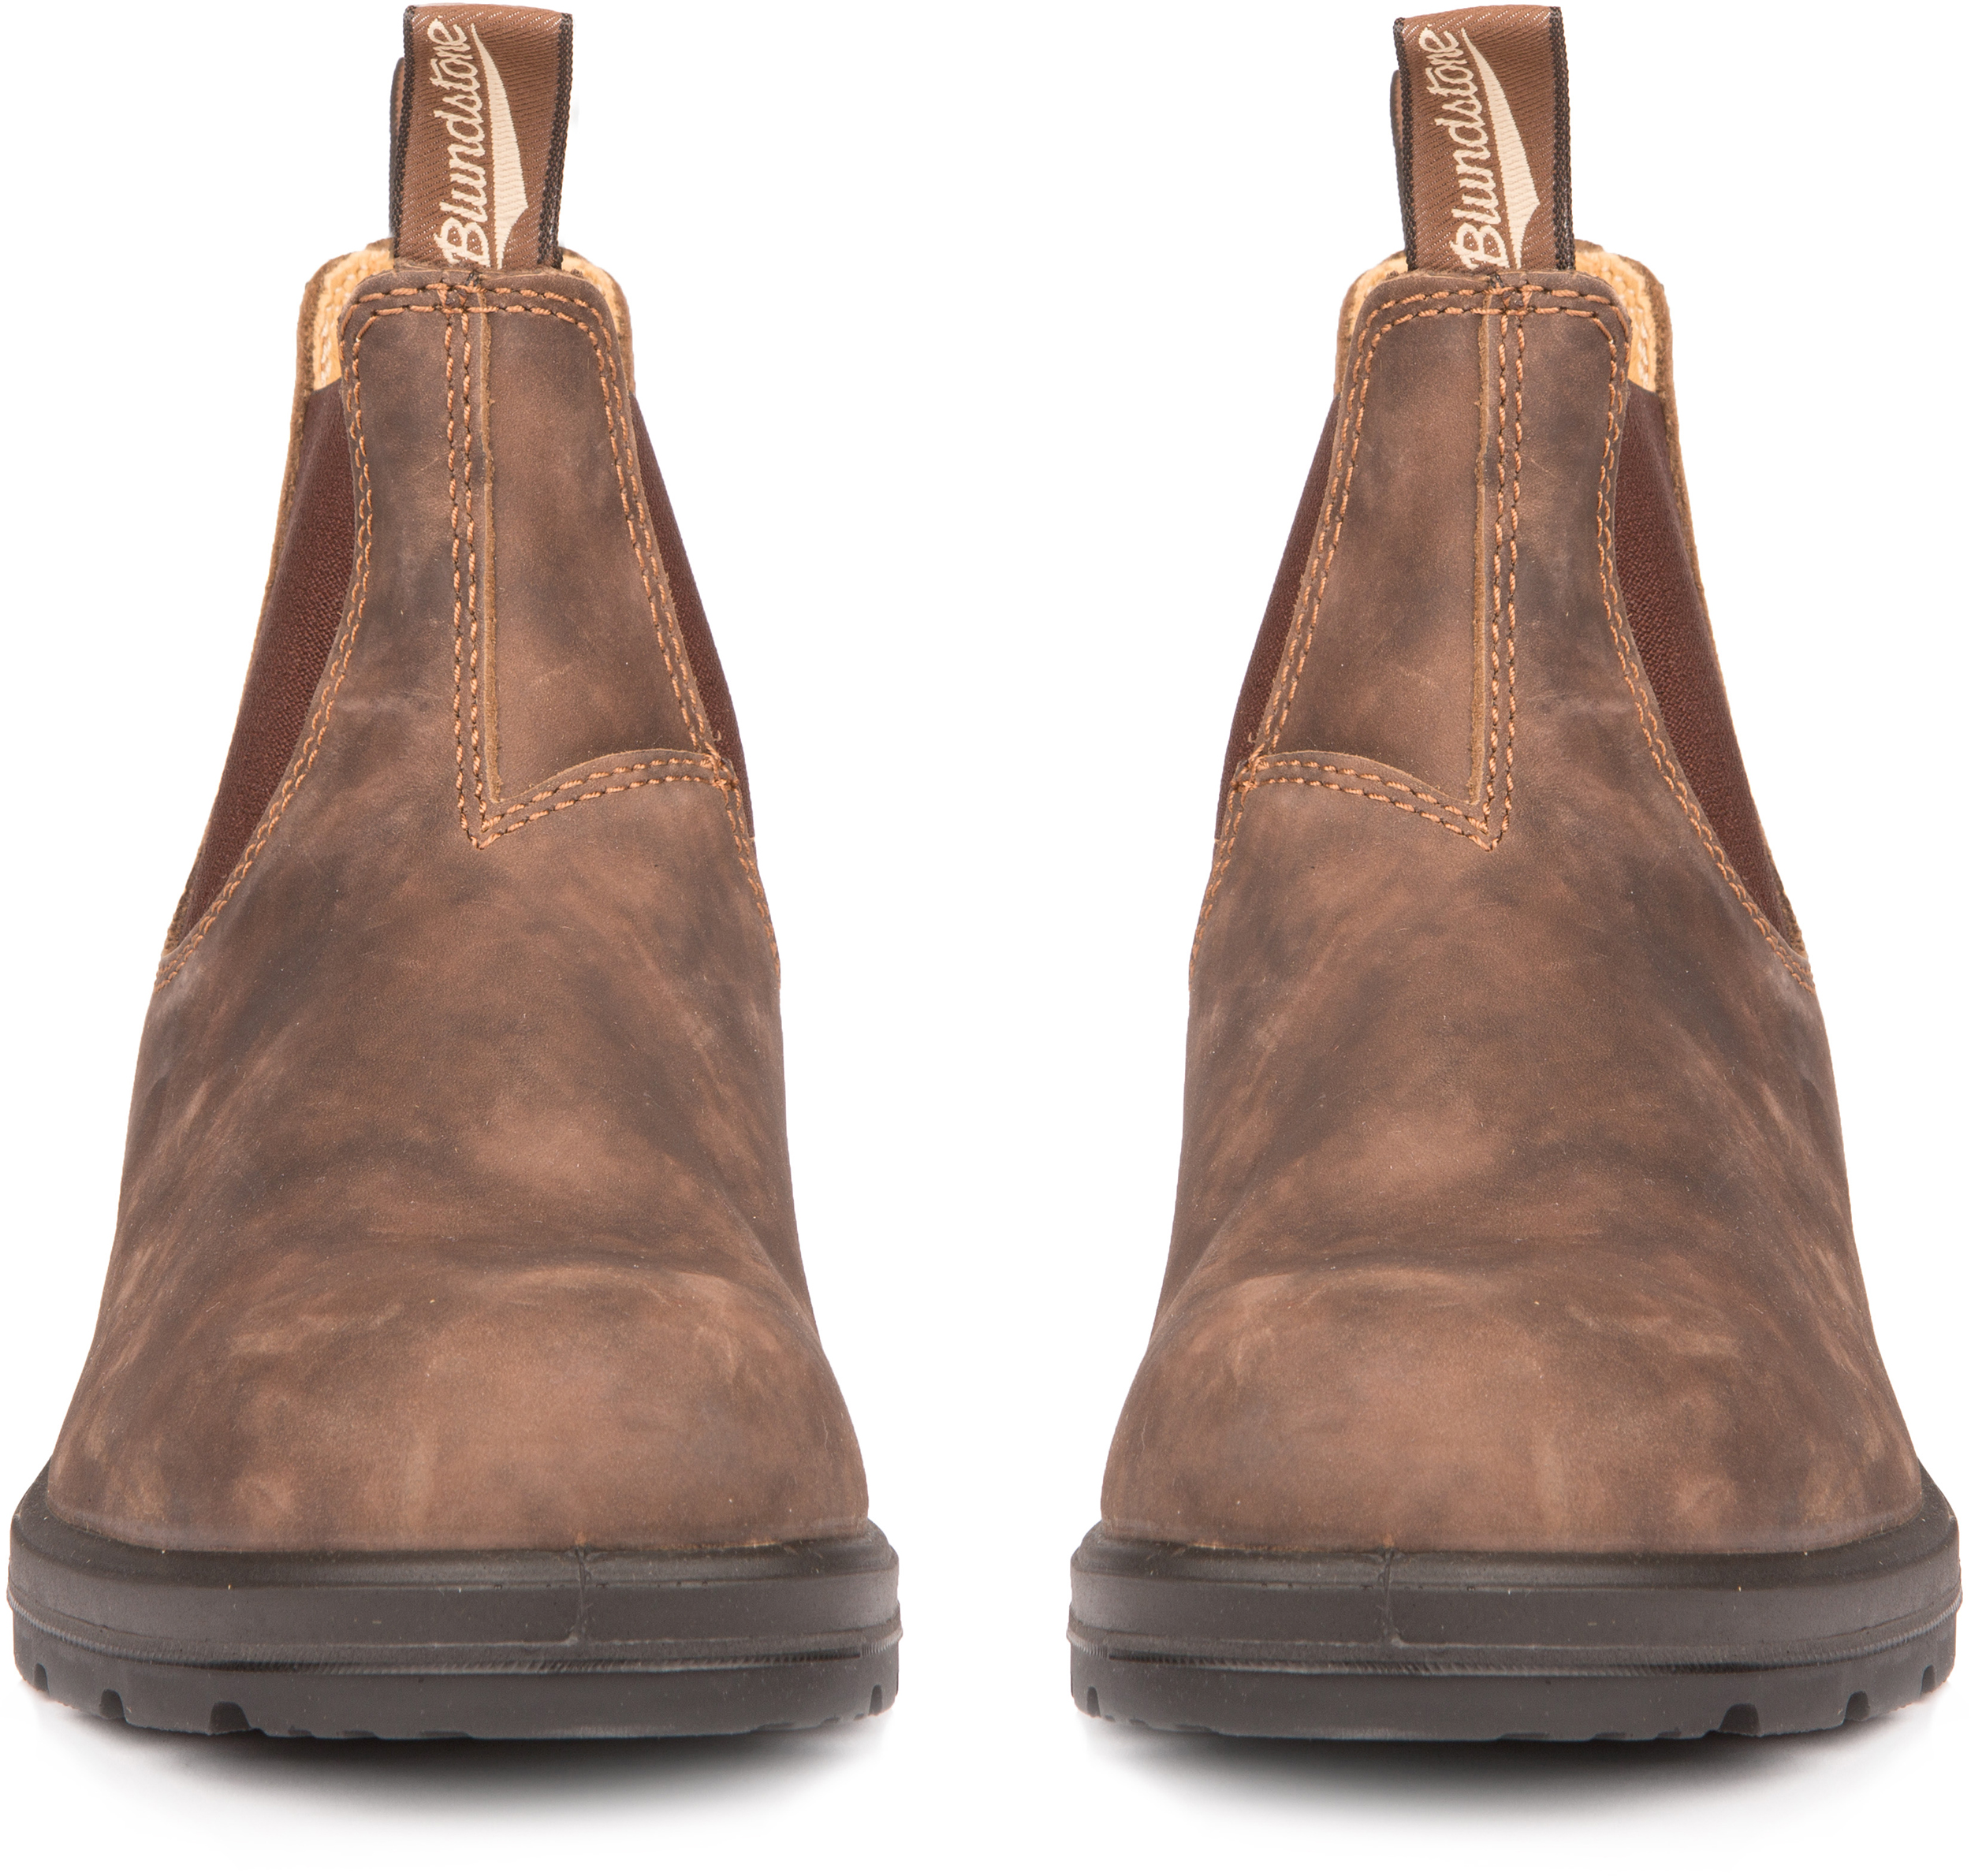 8d97bfa48cb Blundstone Leather Lined 585 Boots - Unisex